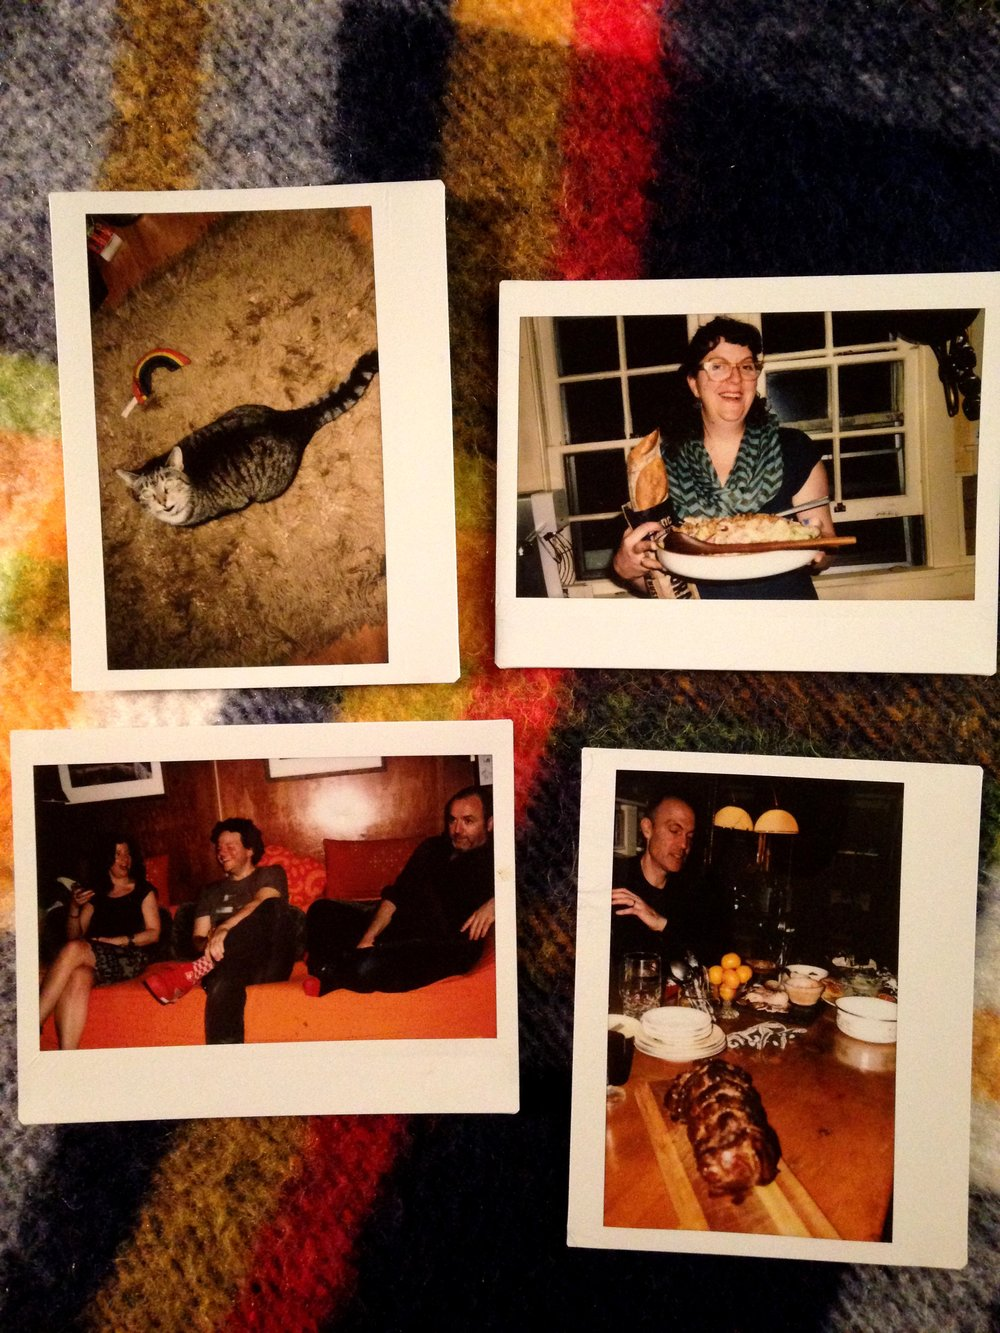 Some of Faulkner and other's instant photos from the dinner.